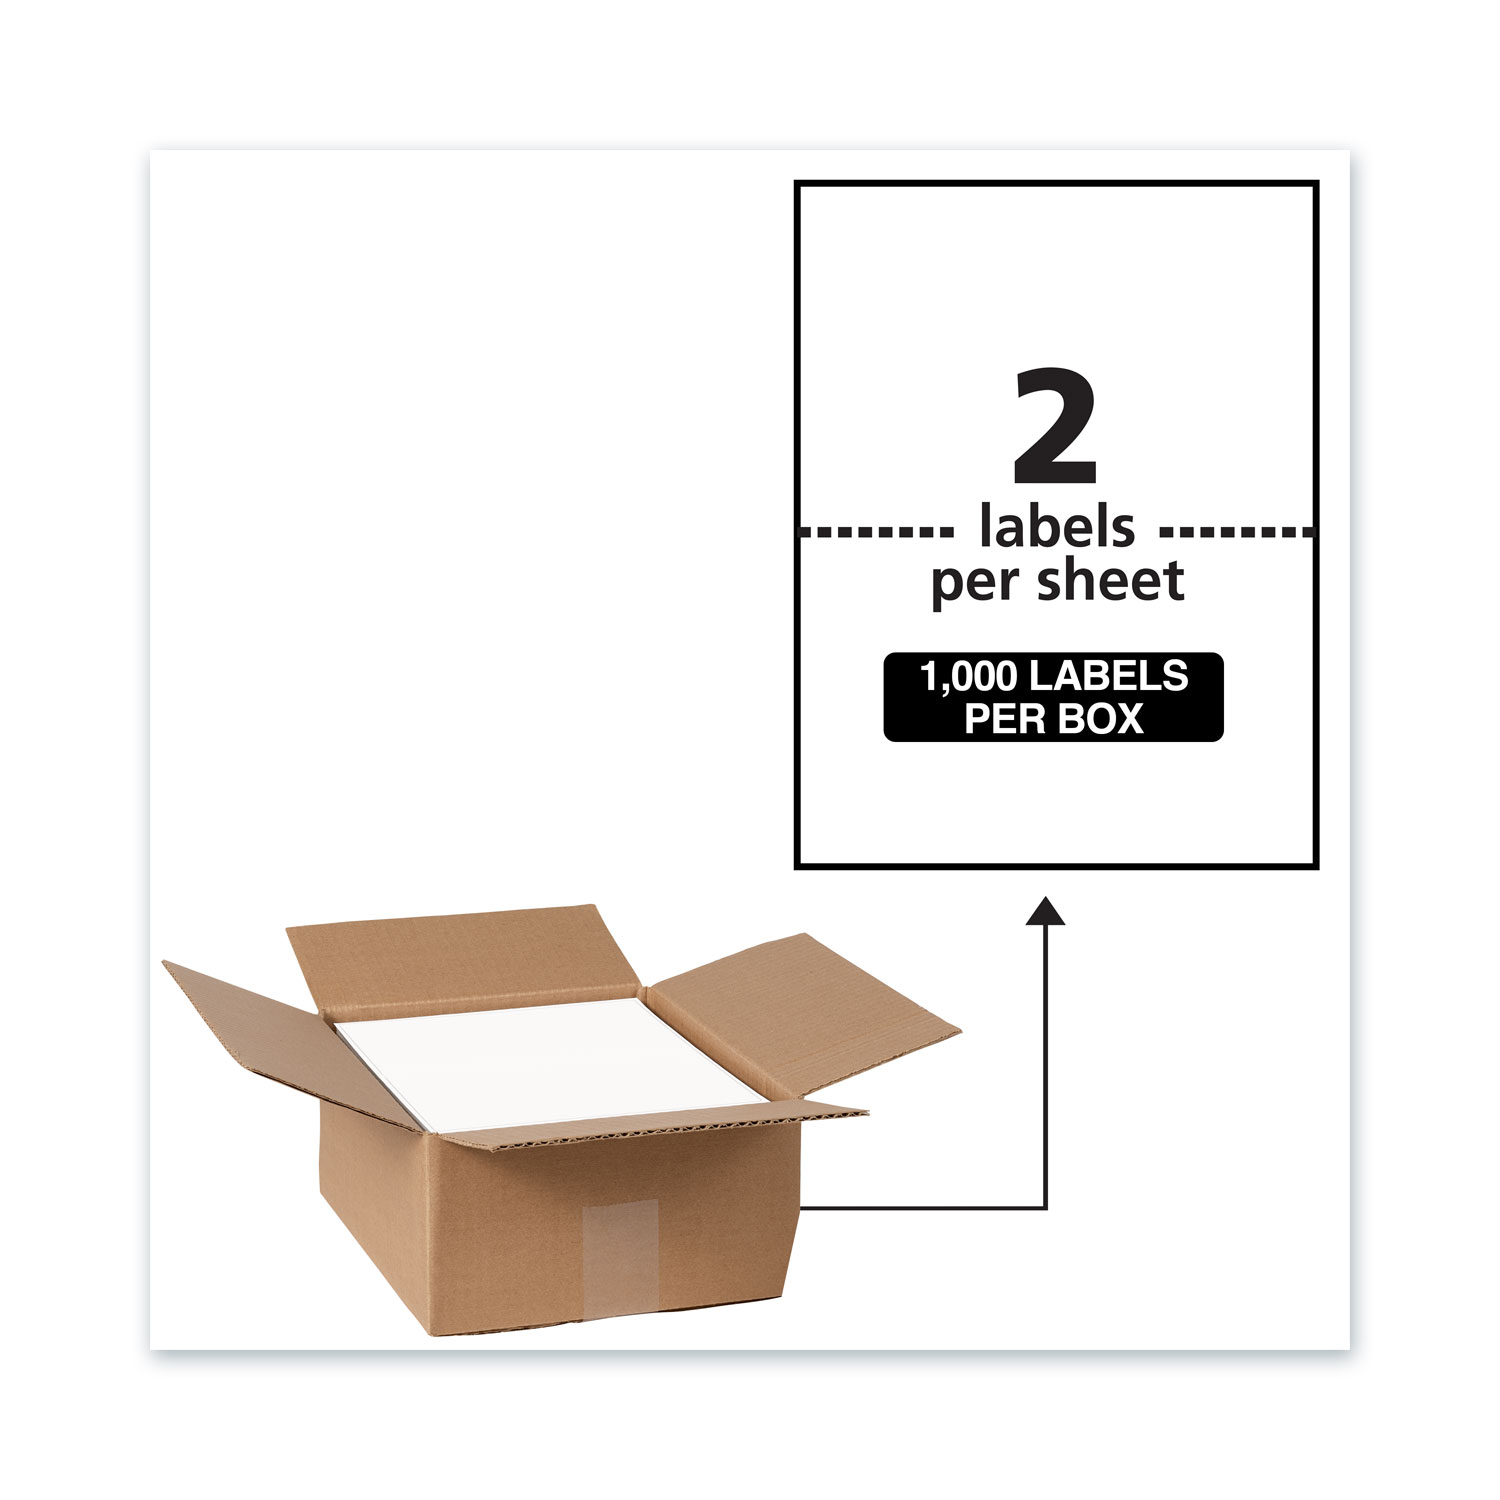 Waterproof Shipping Labels with TrueBlock Technology, Laser Printers, 5.5 x 8.5, White, 2/Sheet, 500 Sheets/Box